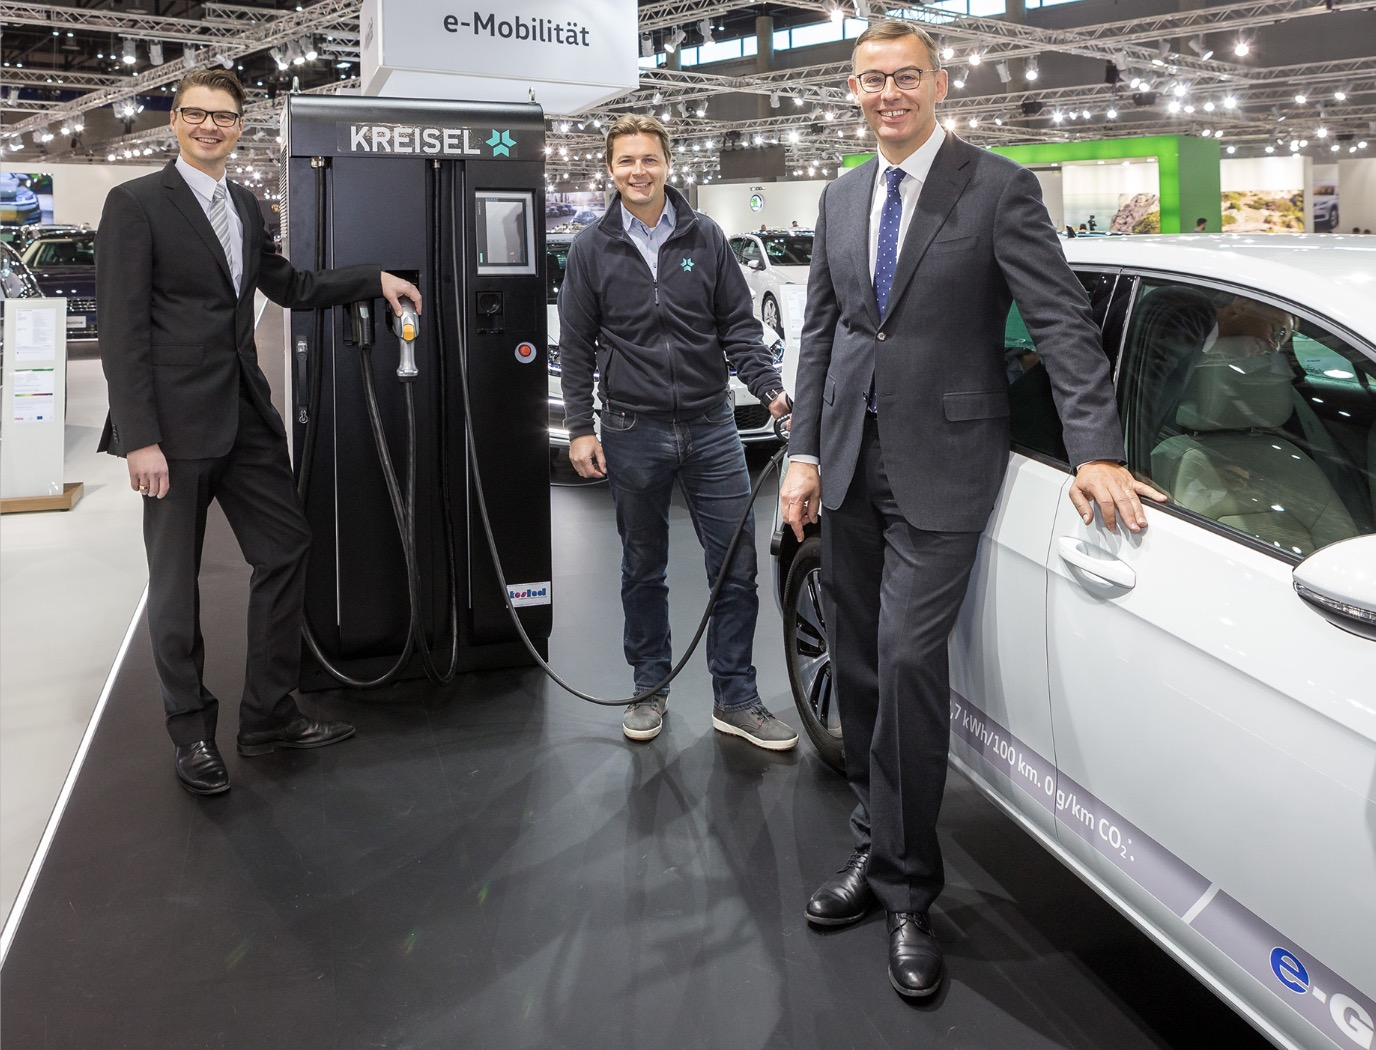 Porsche Austria and Kreisel cooperate in the area of e-charging infrastructure